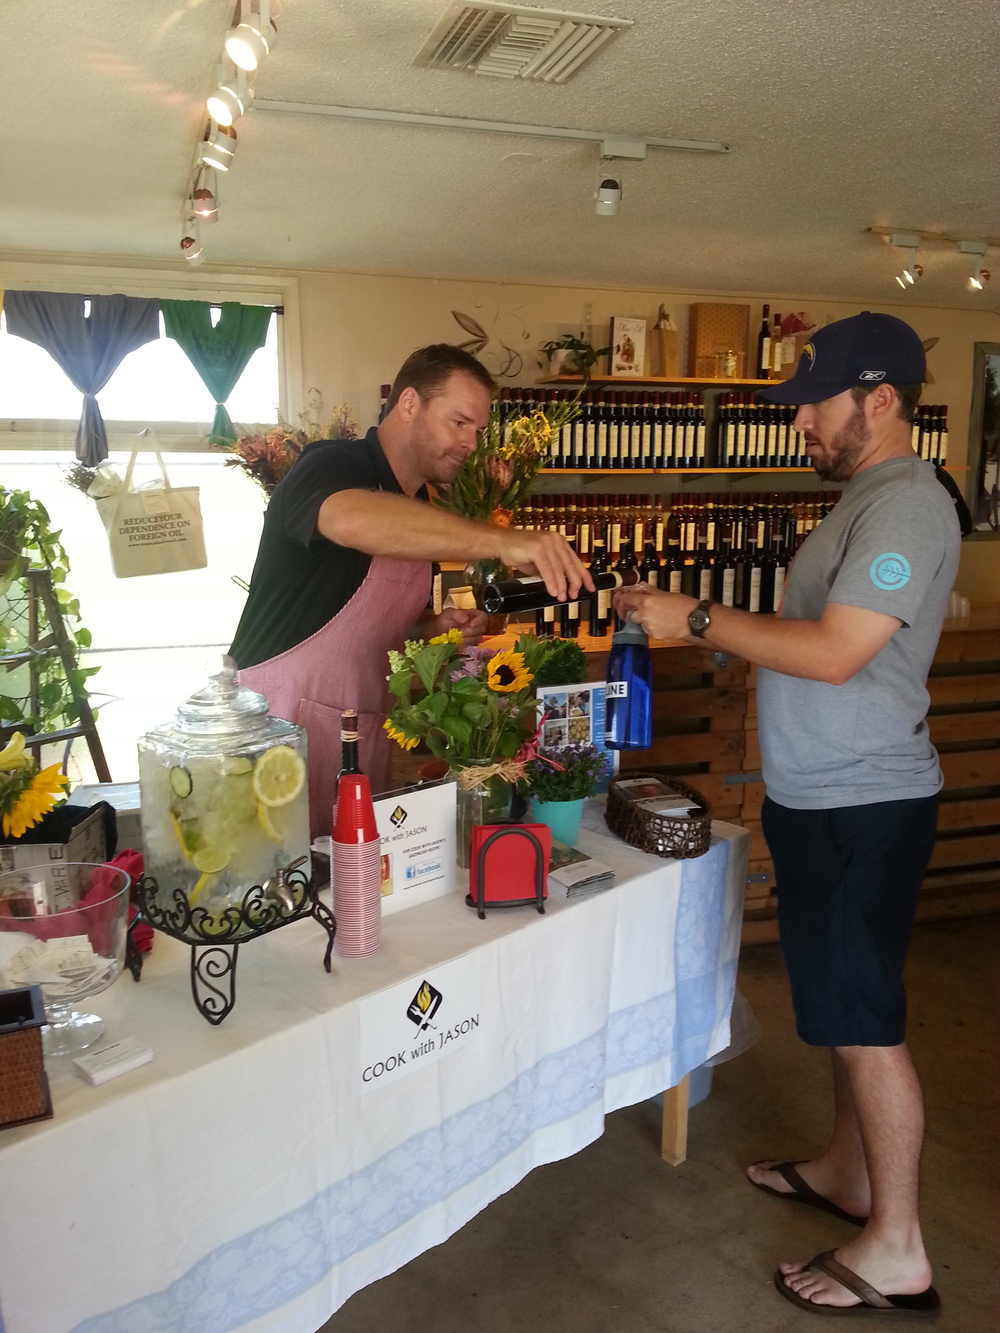 Serving gazpacho at Temecula Olive Oil Co